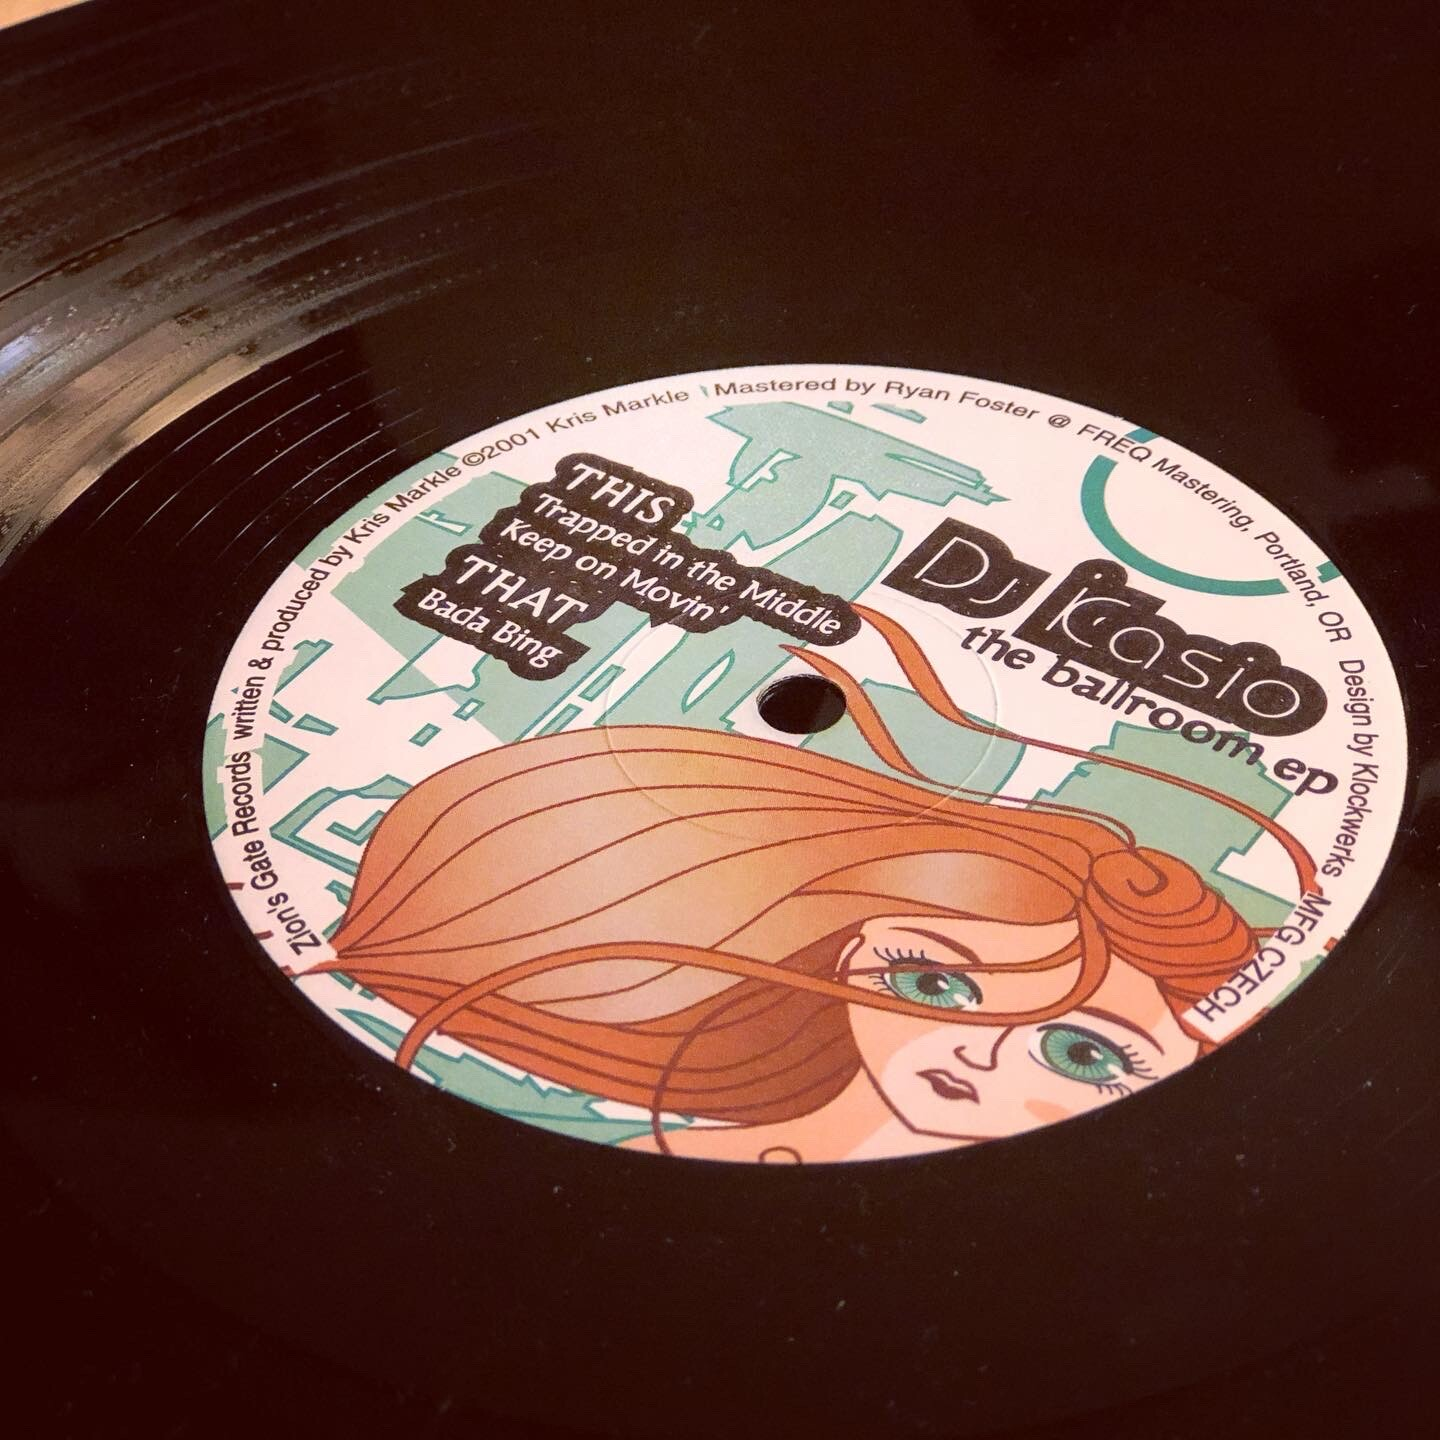 printed record label side b